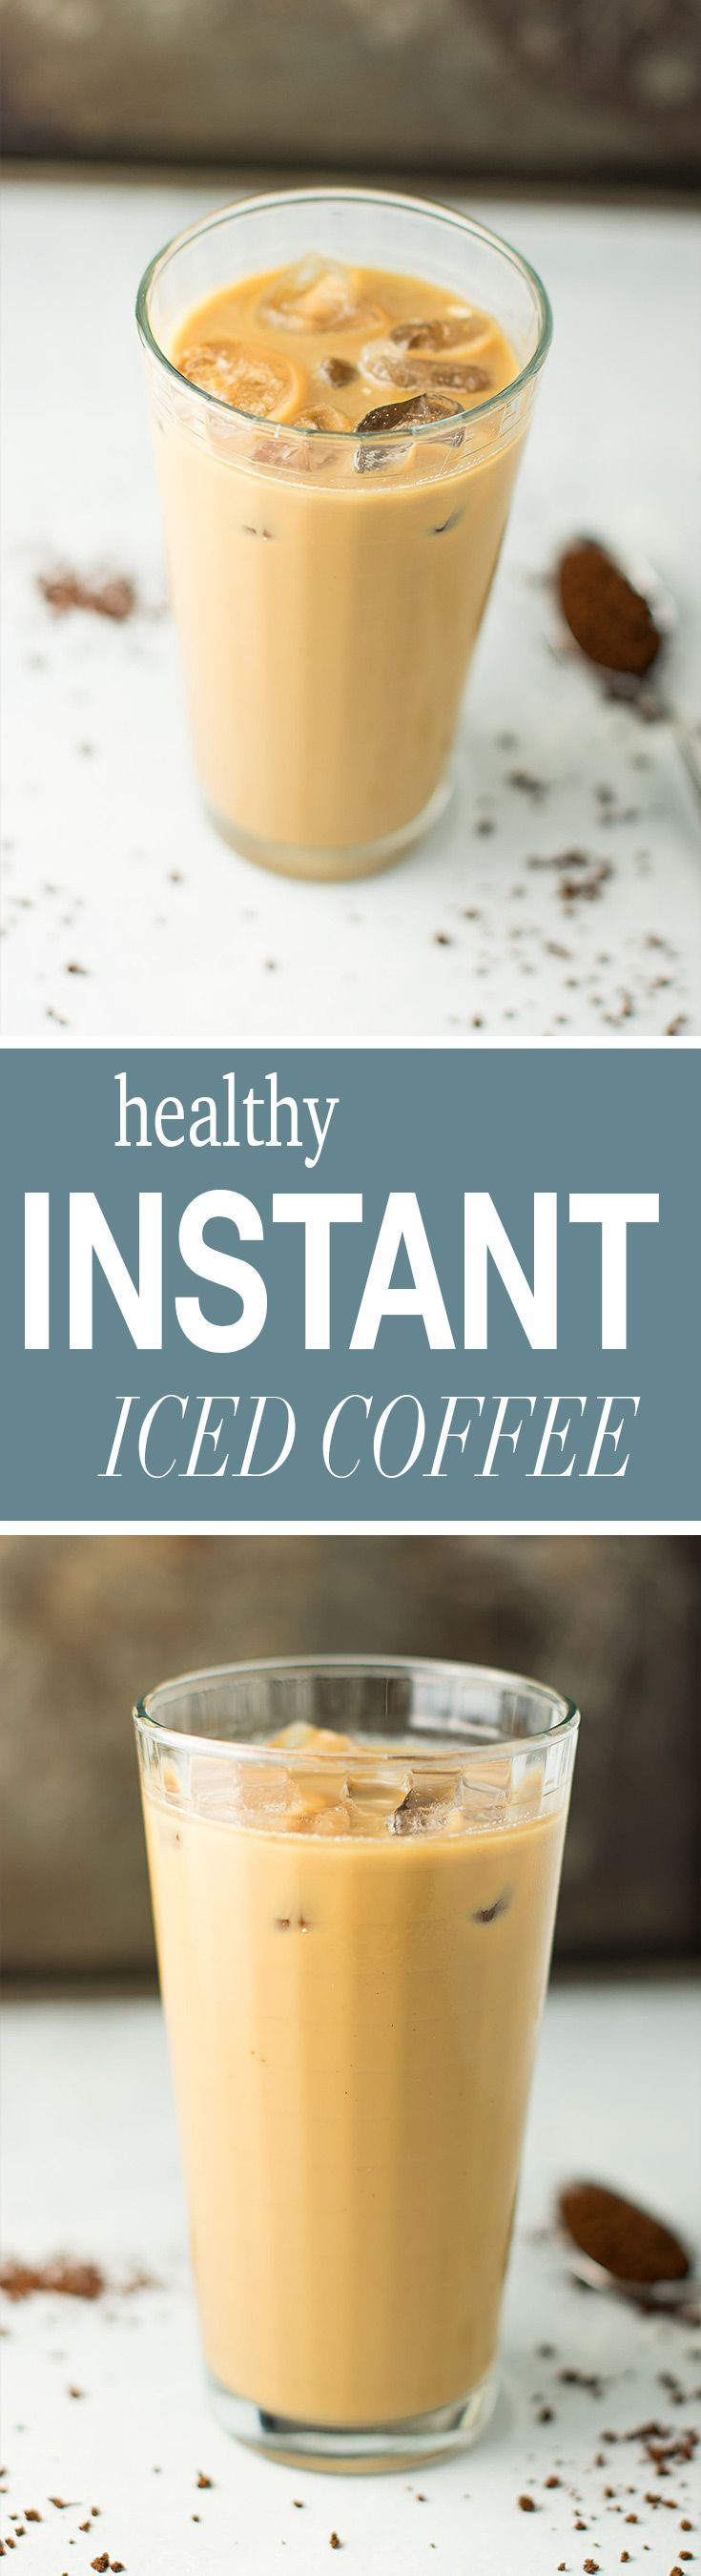 A two minute recipe for healthy instant iced coffee that